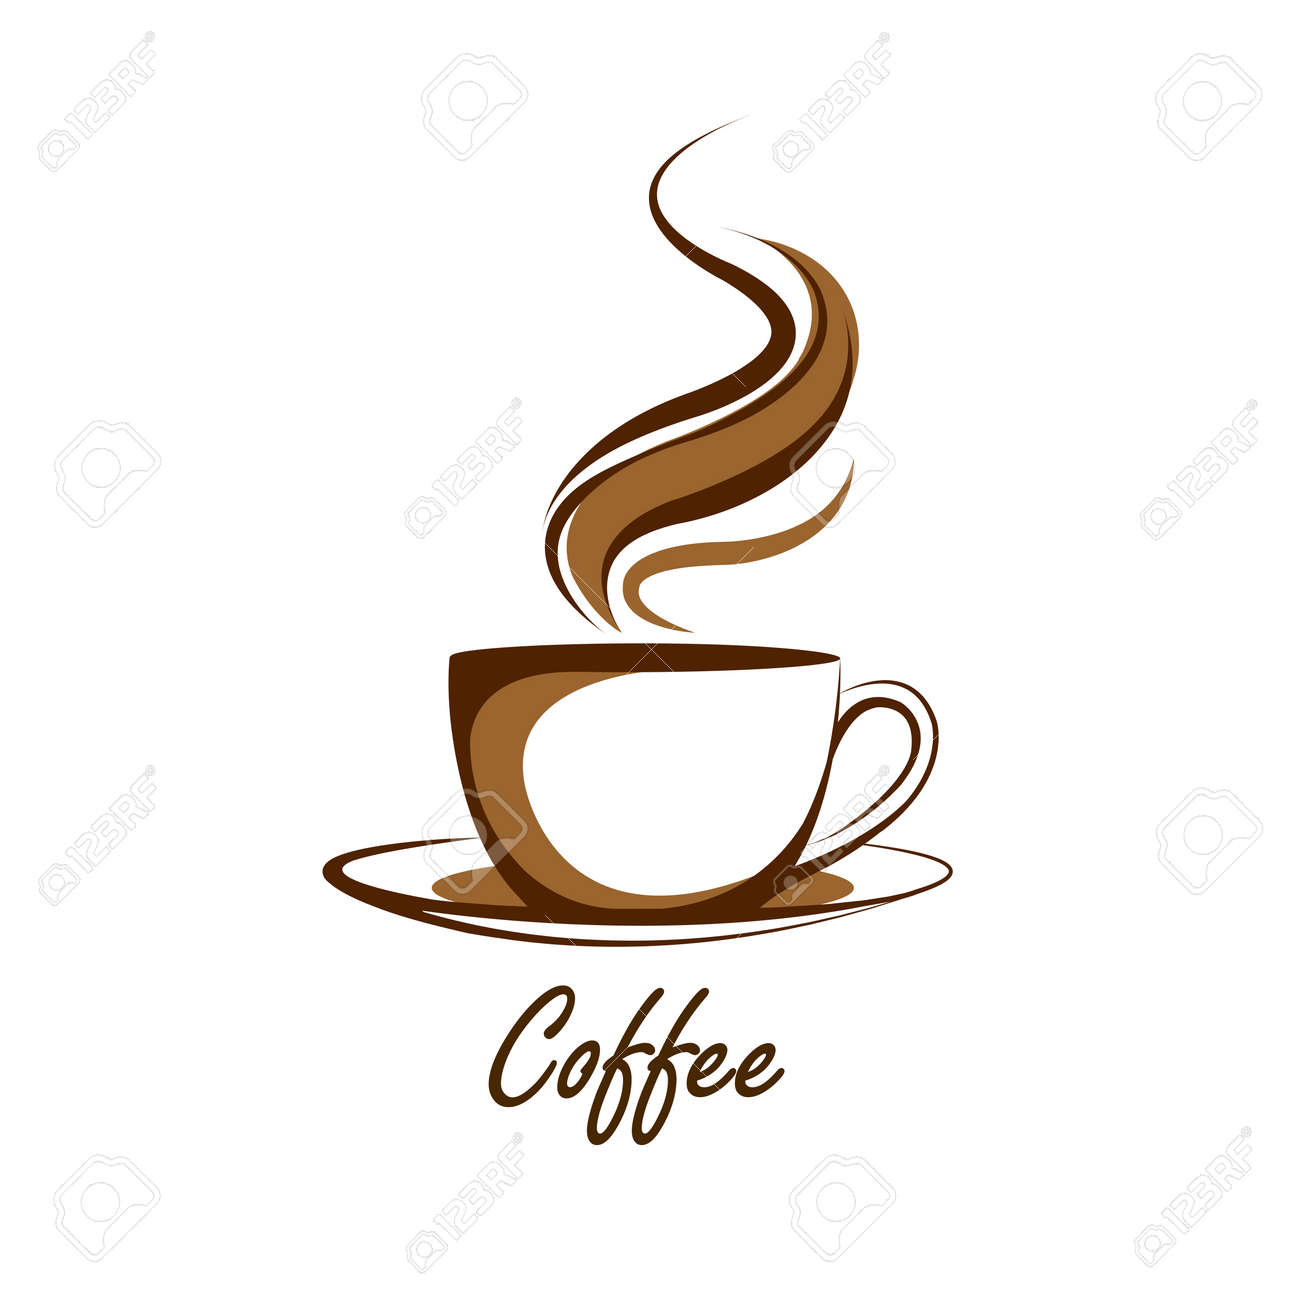 coffee cup vector illustration royalty free cliparts vectors and rh 123rf com coffee cup vector black and white coffee cup vector free download